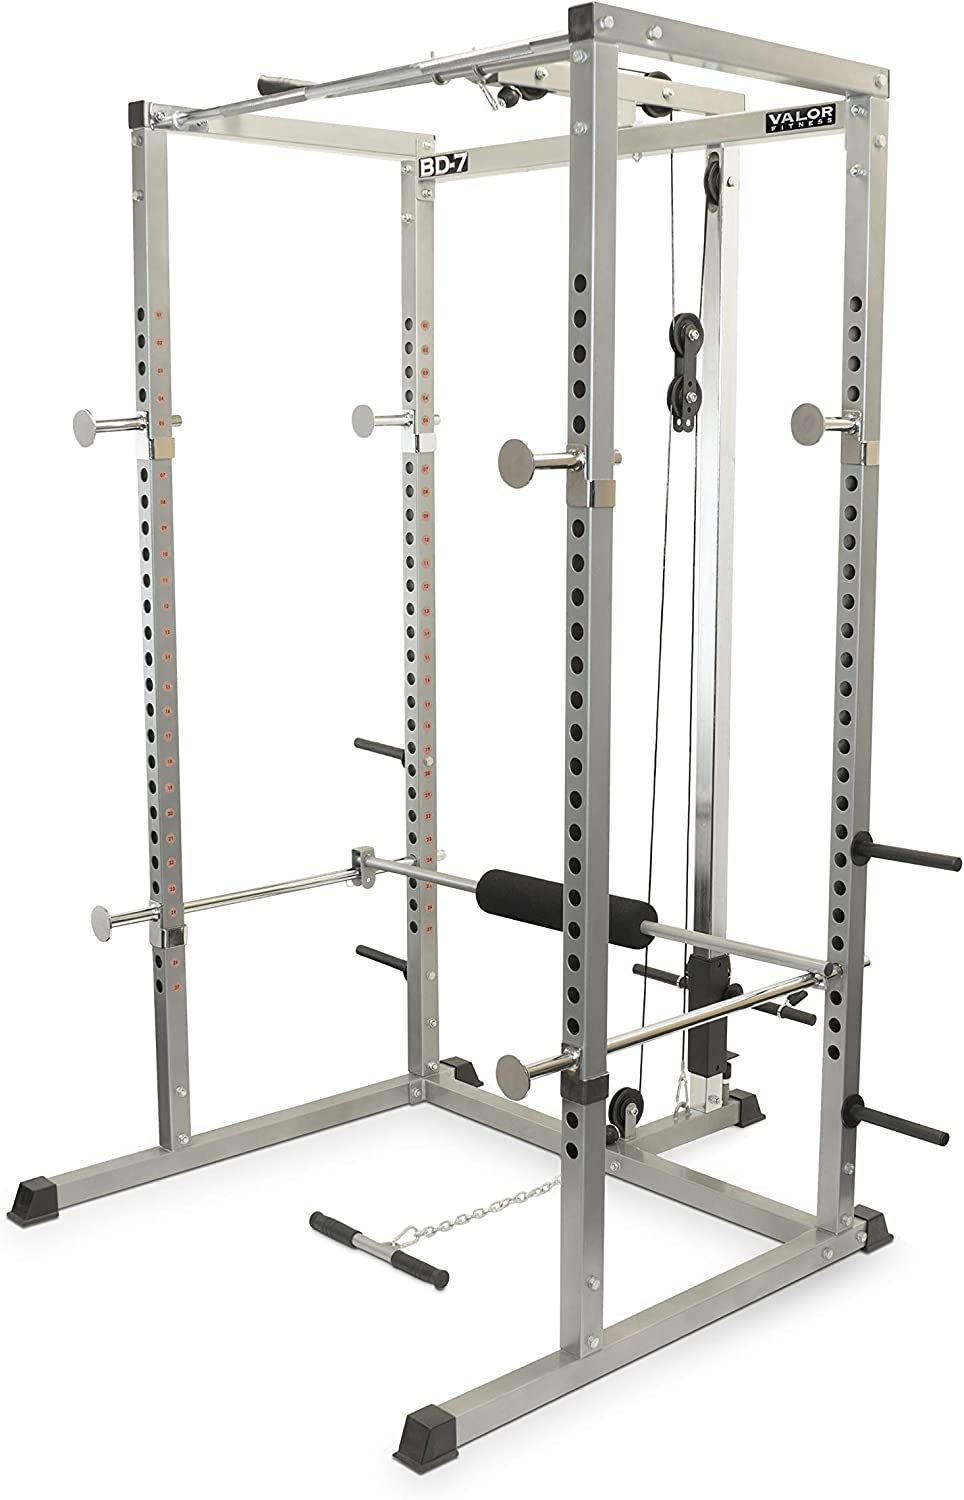 Valor Fitness BD-7 Power Rack w LAT Pull Attachment and Other Bundle Options for a Complete Home Gym